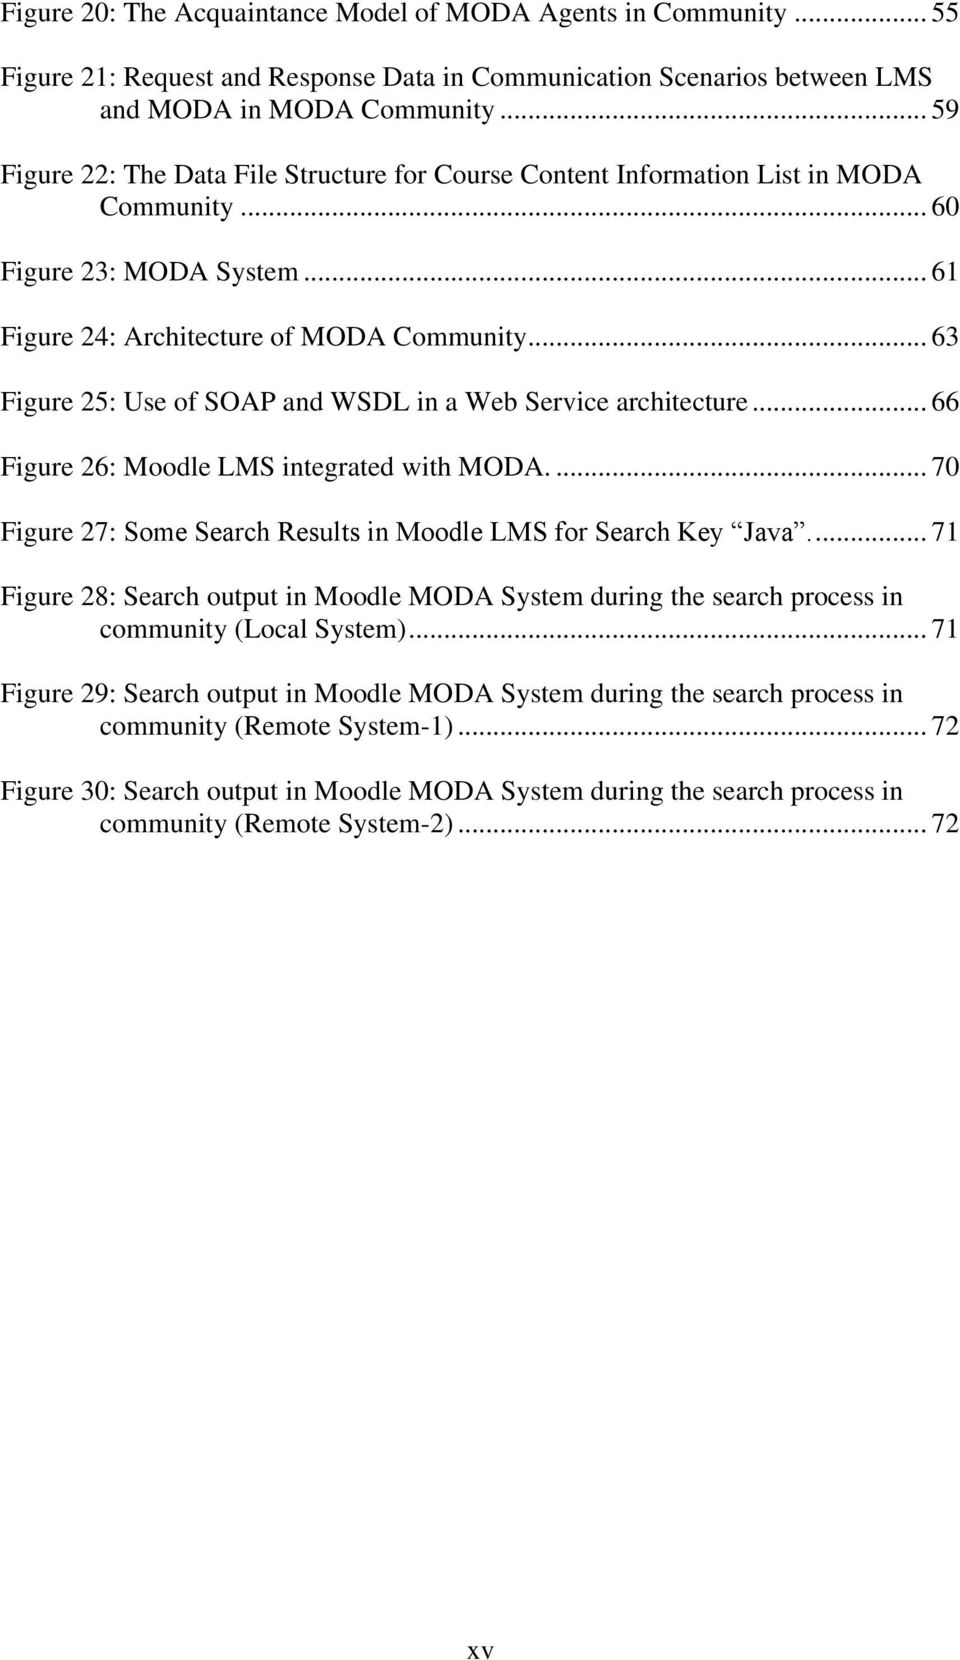 .. 63 Figure 25: Use of SOAP and WSDL in a Web Service architecture... 66 Figure 26: Moodle LMS integrated with MODA.... 70 Figure 27: Some Search Results in Moodle LMS for Search Key Java.